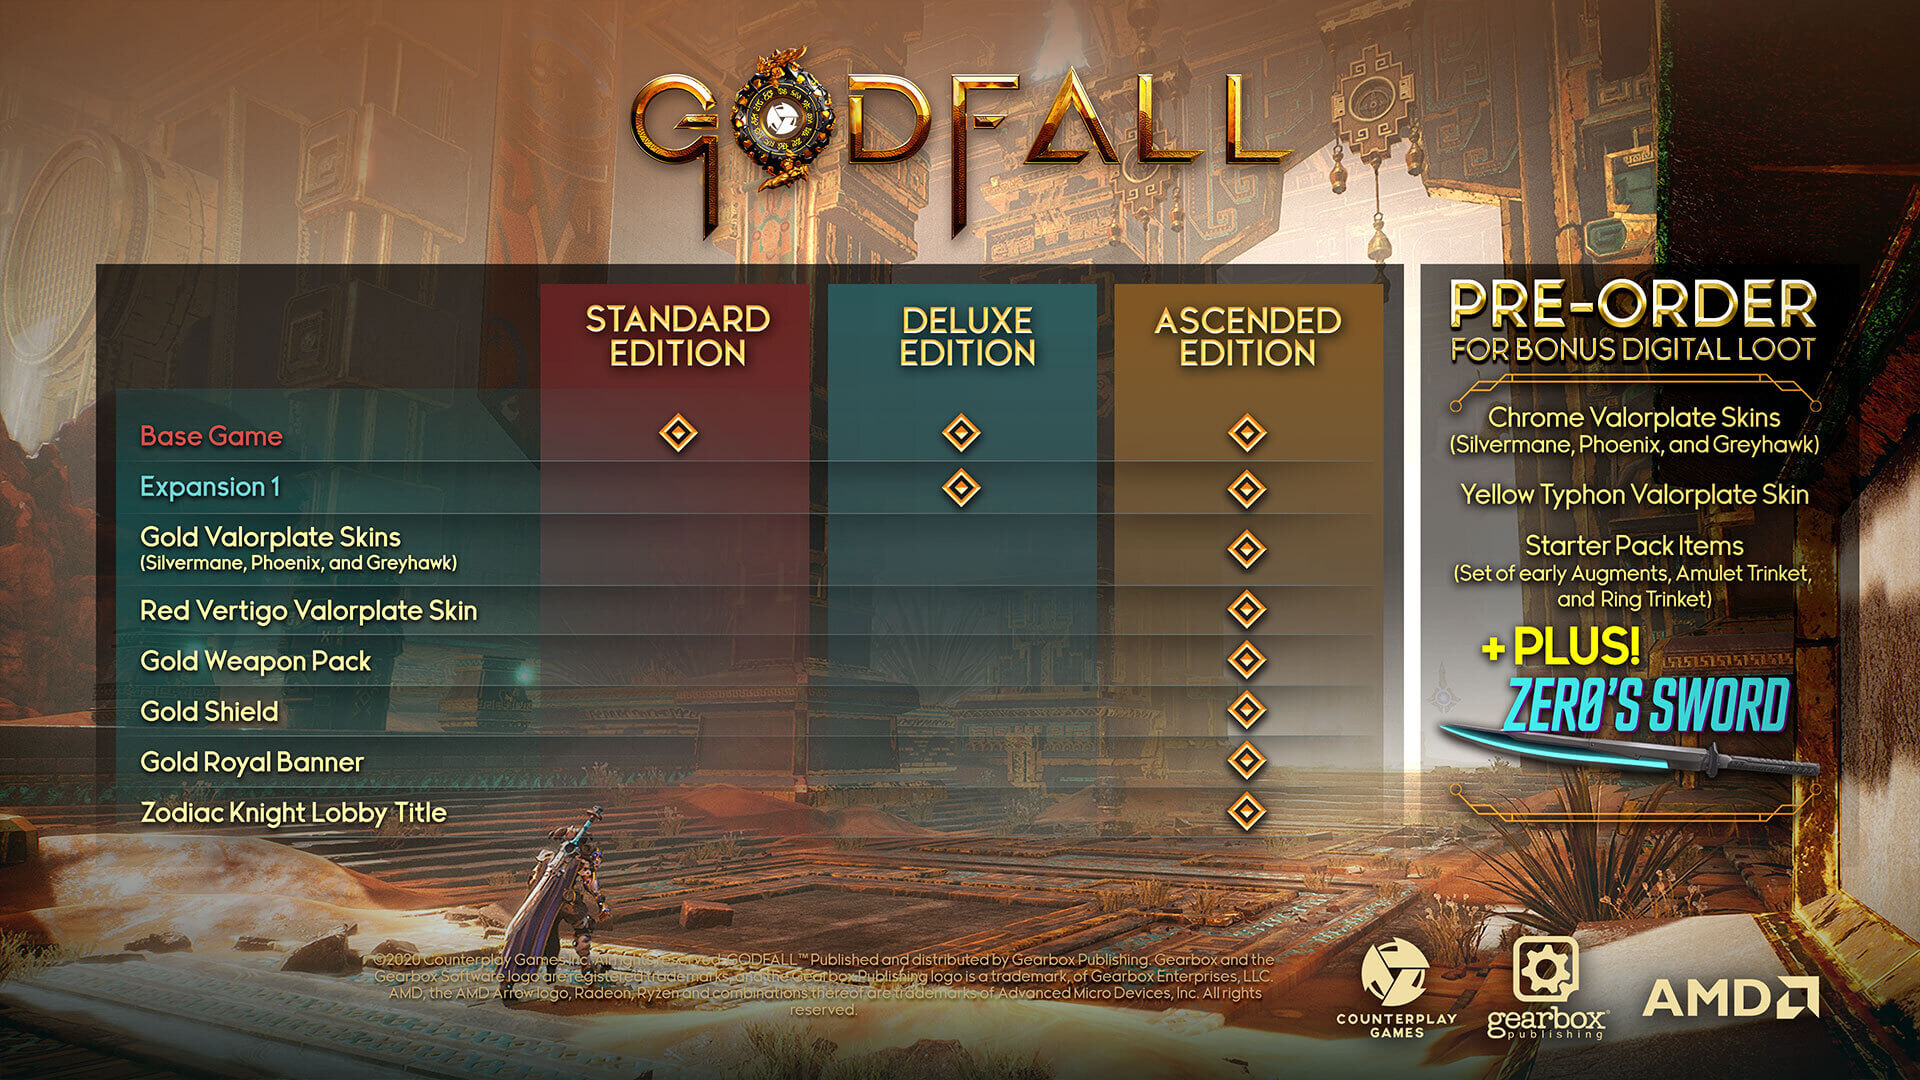 Godfall PS5 Gearbox Counterplay PC